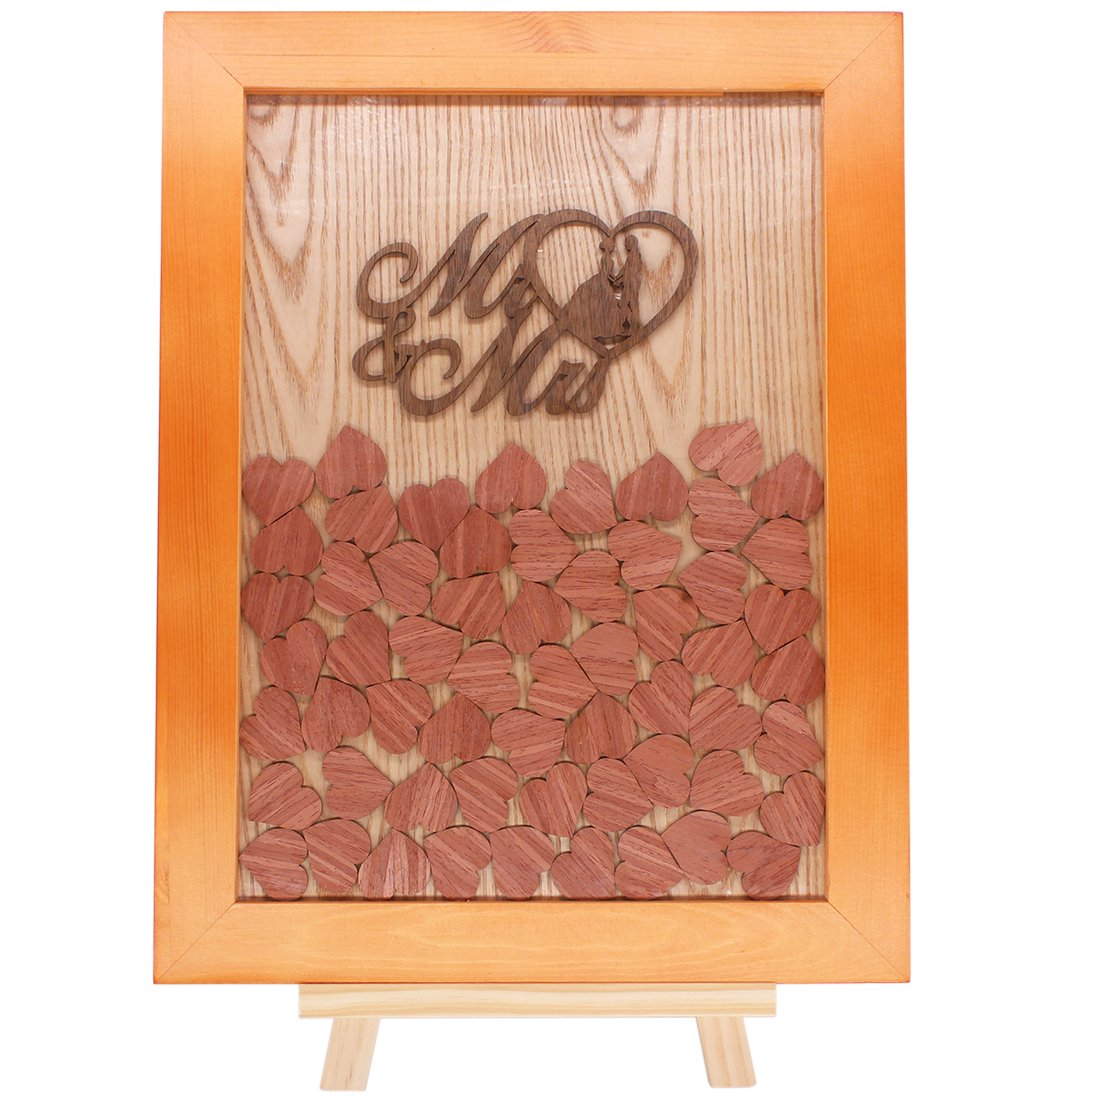 Creawoo Nature Wooden Frame Wedding Guest Book, Beautiful Wedding Decoration 96pcs Wooden Drop Heart Shape Ornaments with Wood Stand YOUGU